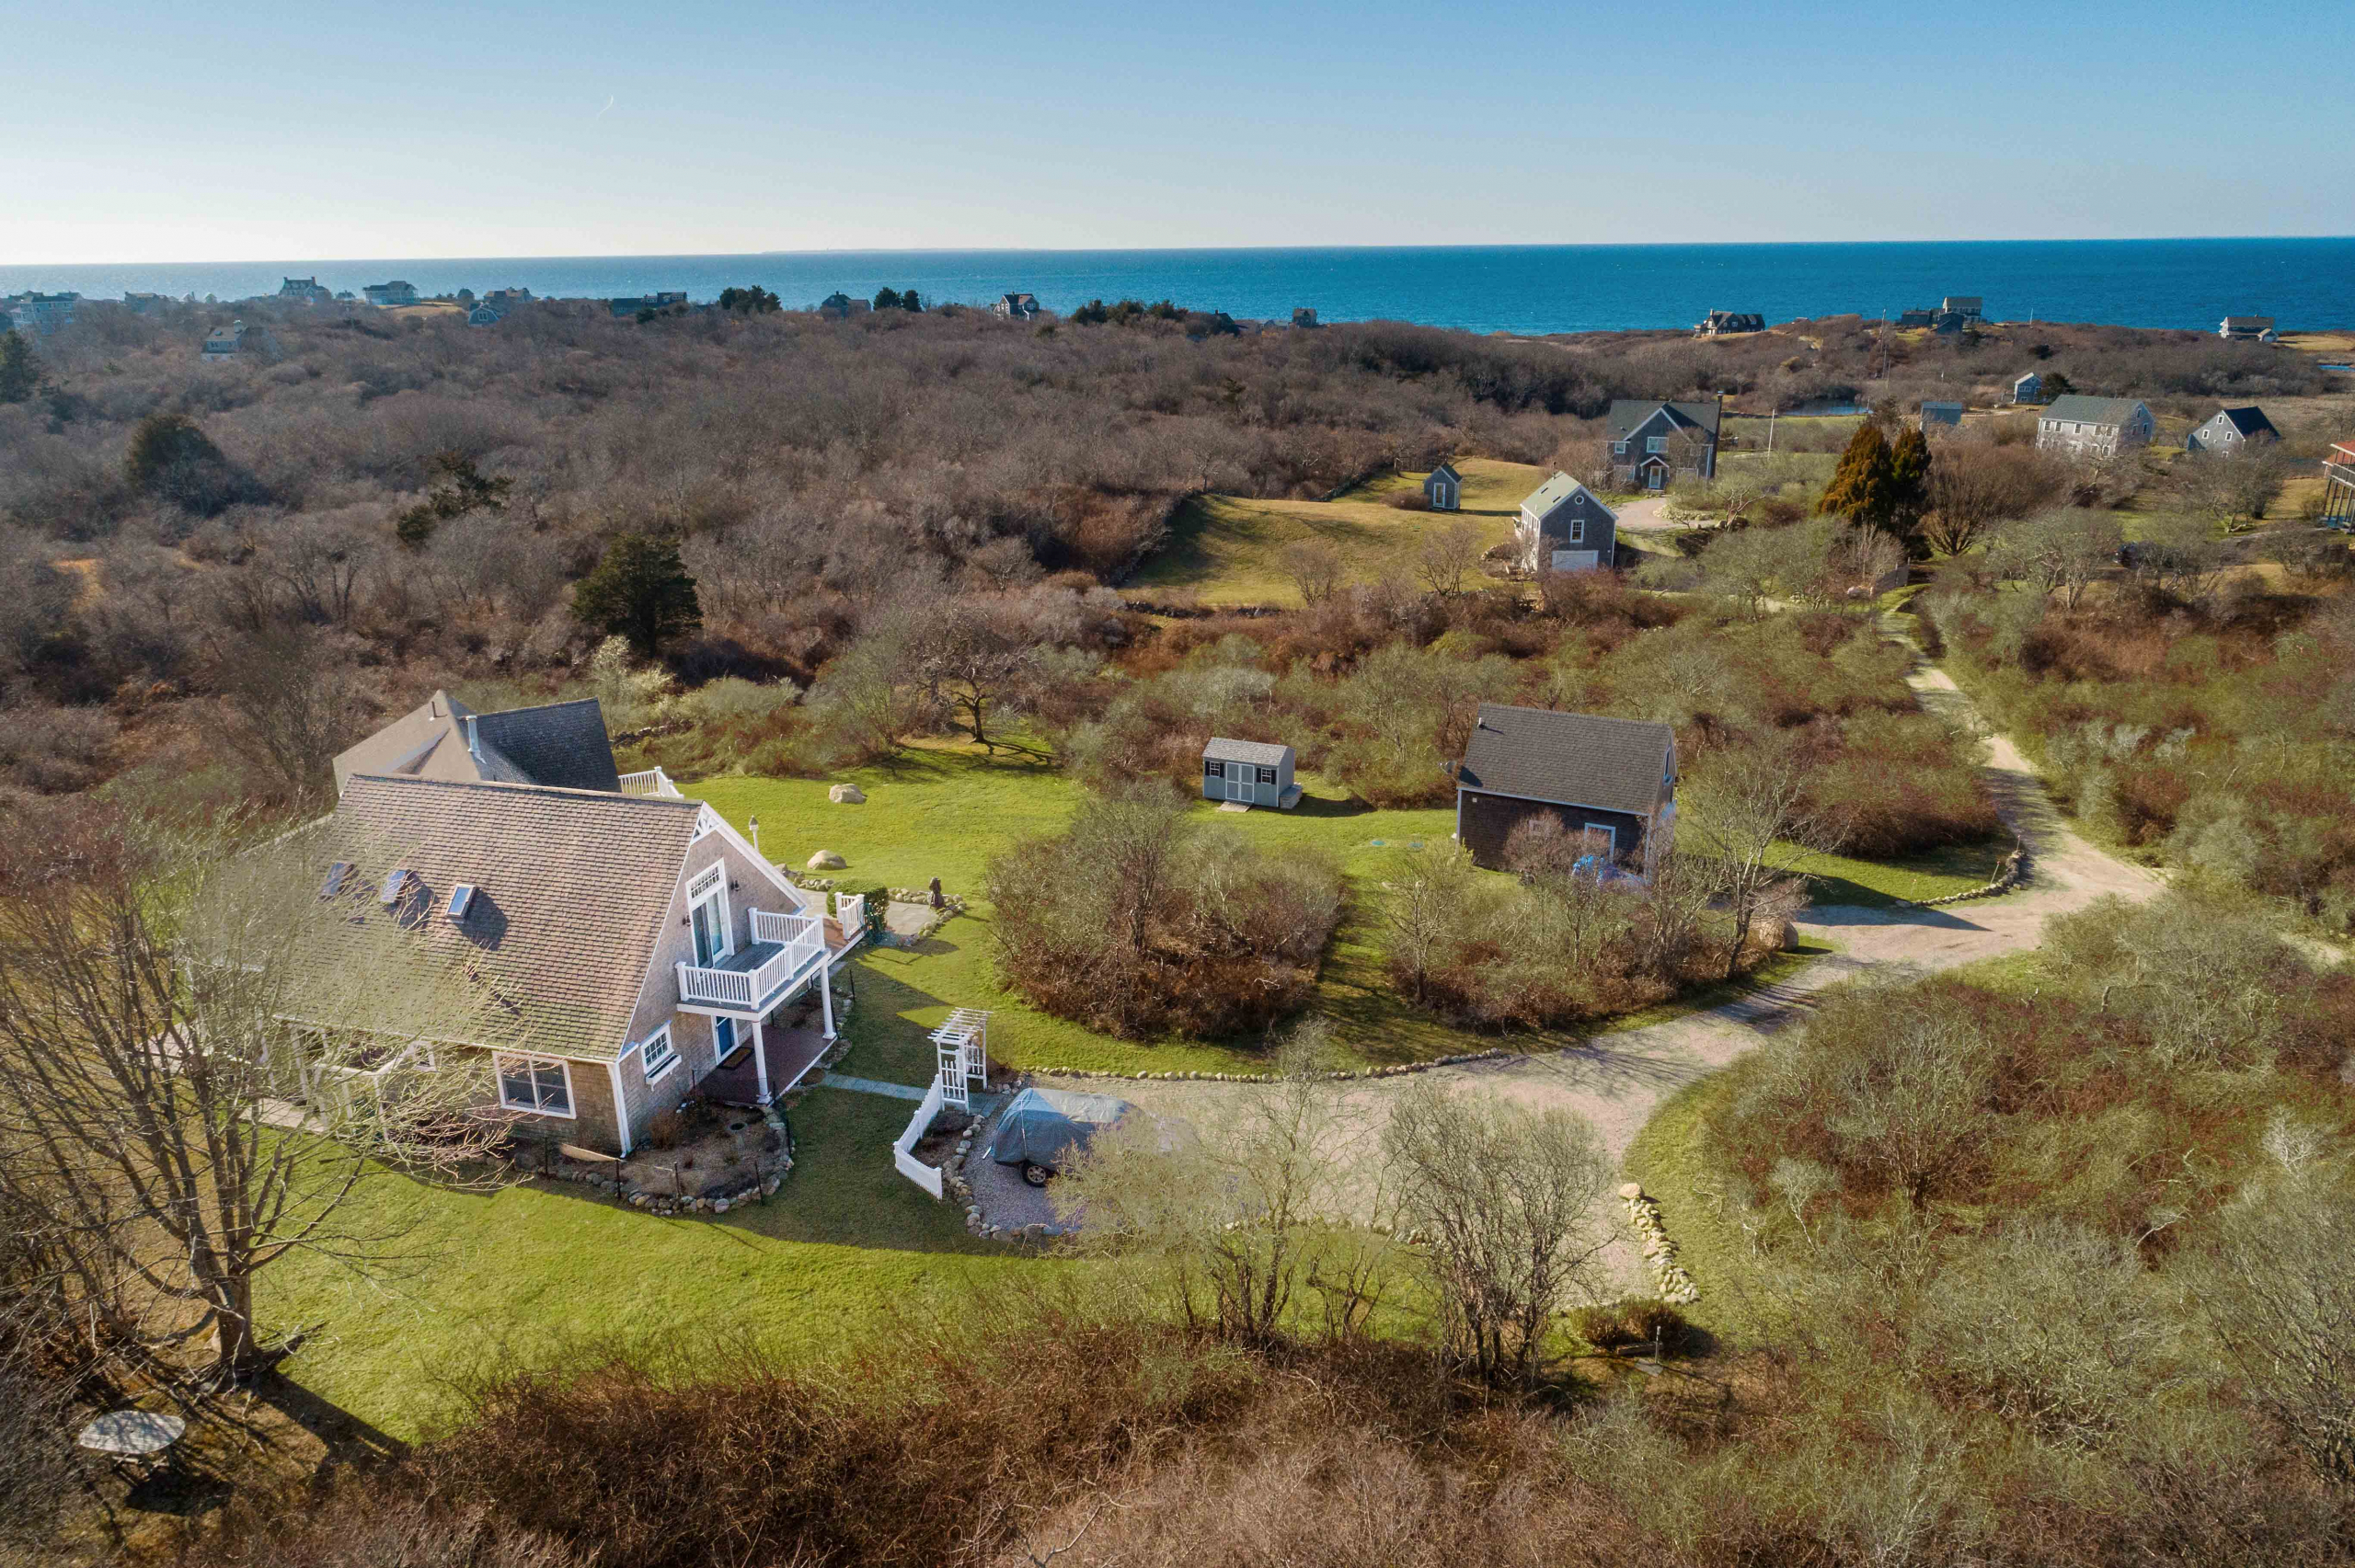 CONTEMPORARY BLOCK ISLAND COTTAGE SELLS FOR $1,600,000, MARKING ONE OF THE TOP THREE SALE ON ISLAND, YEAR-TO-DATE*